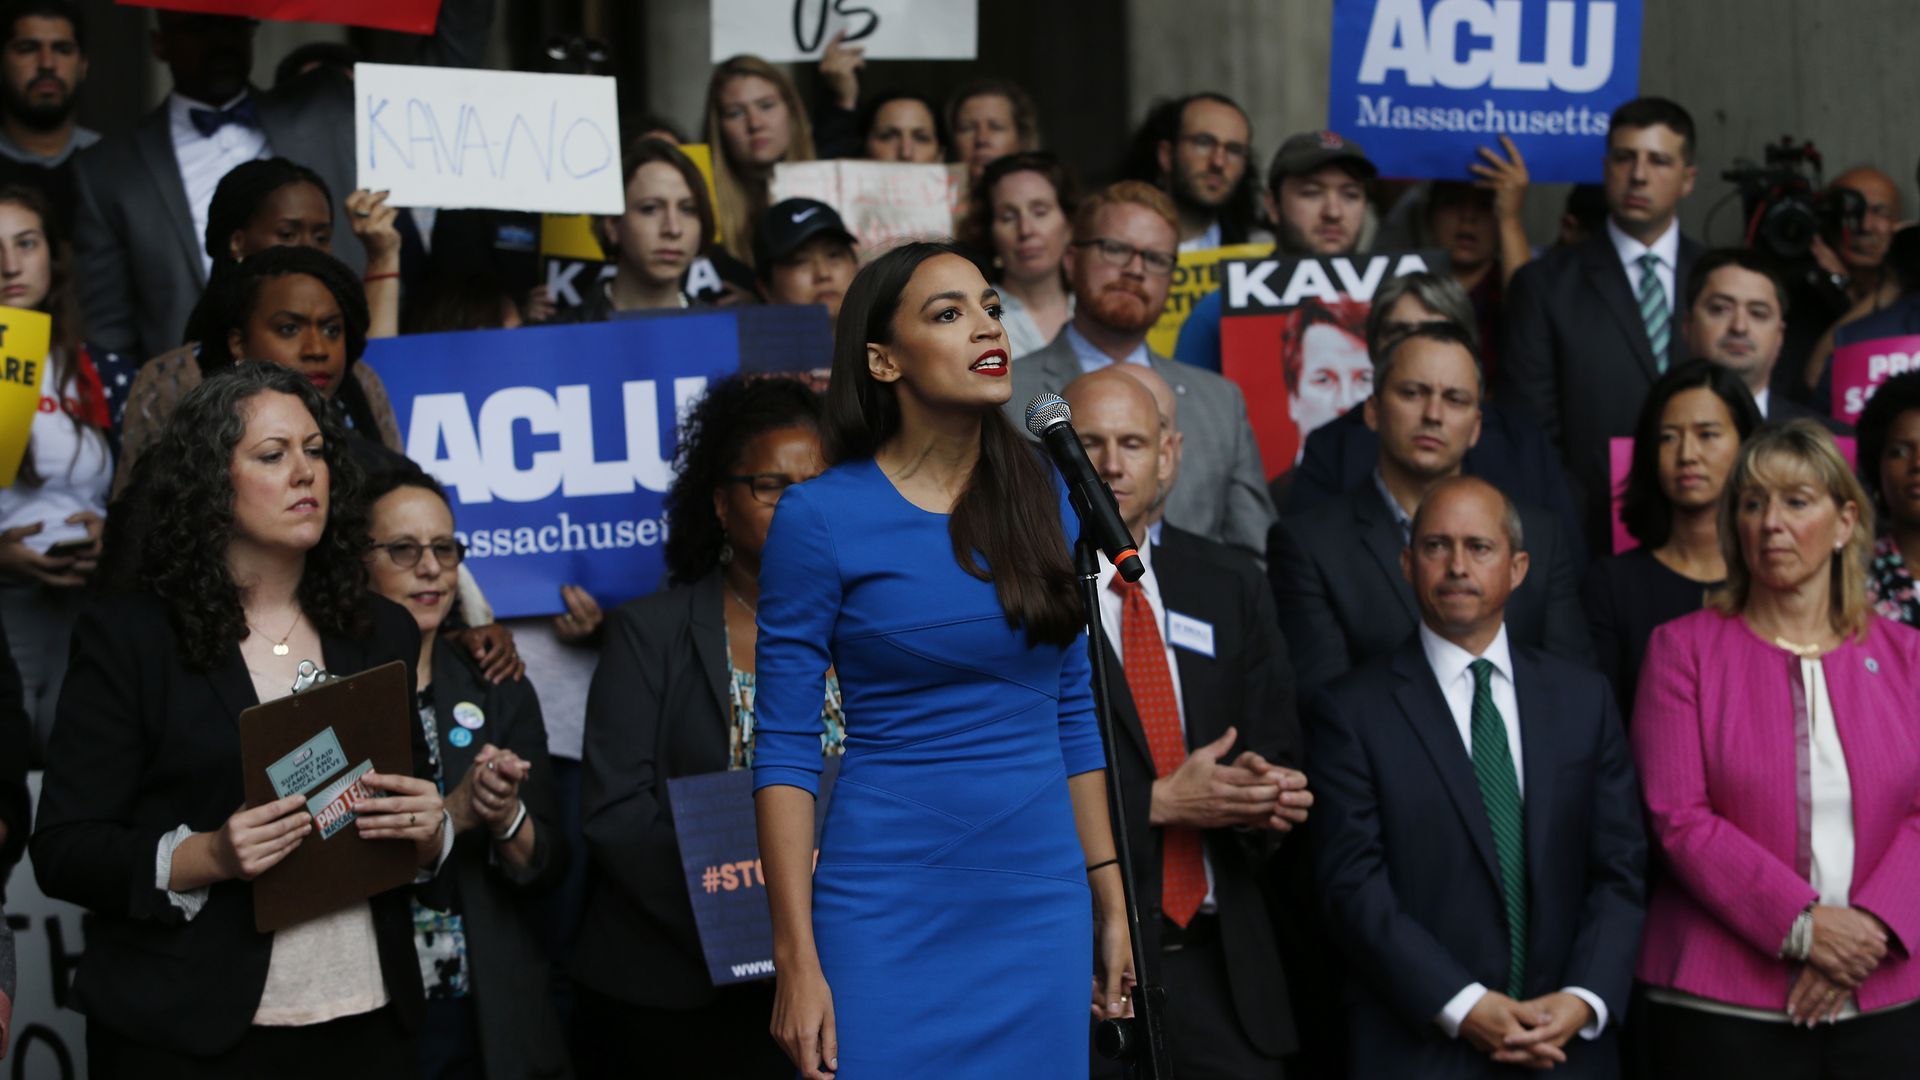 Alexandria Ocasio-Cortez stands before protestors while addressing a rally in Boston